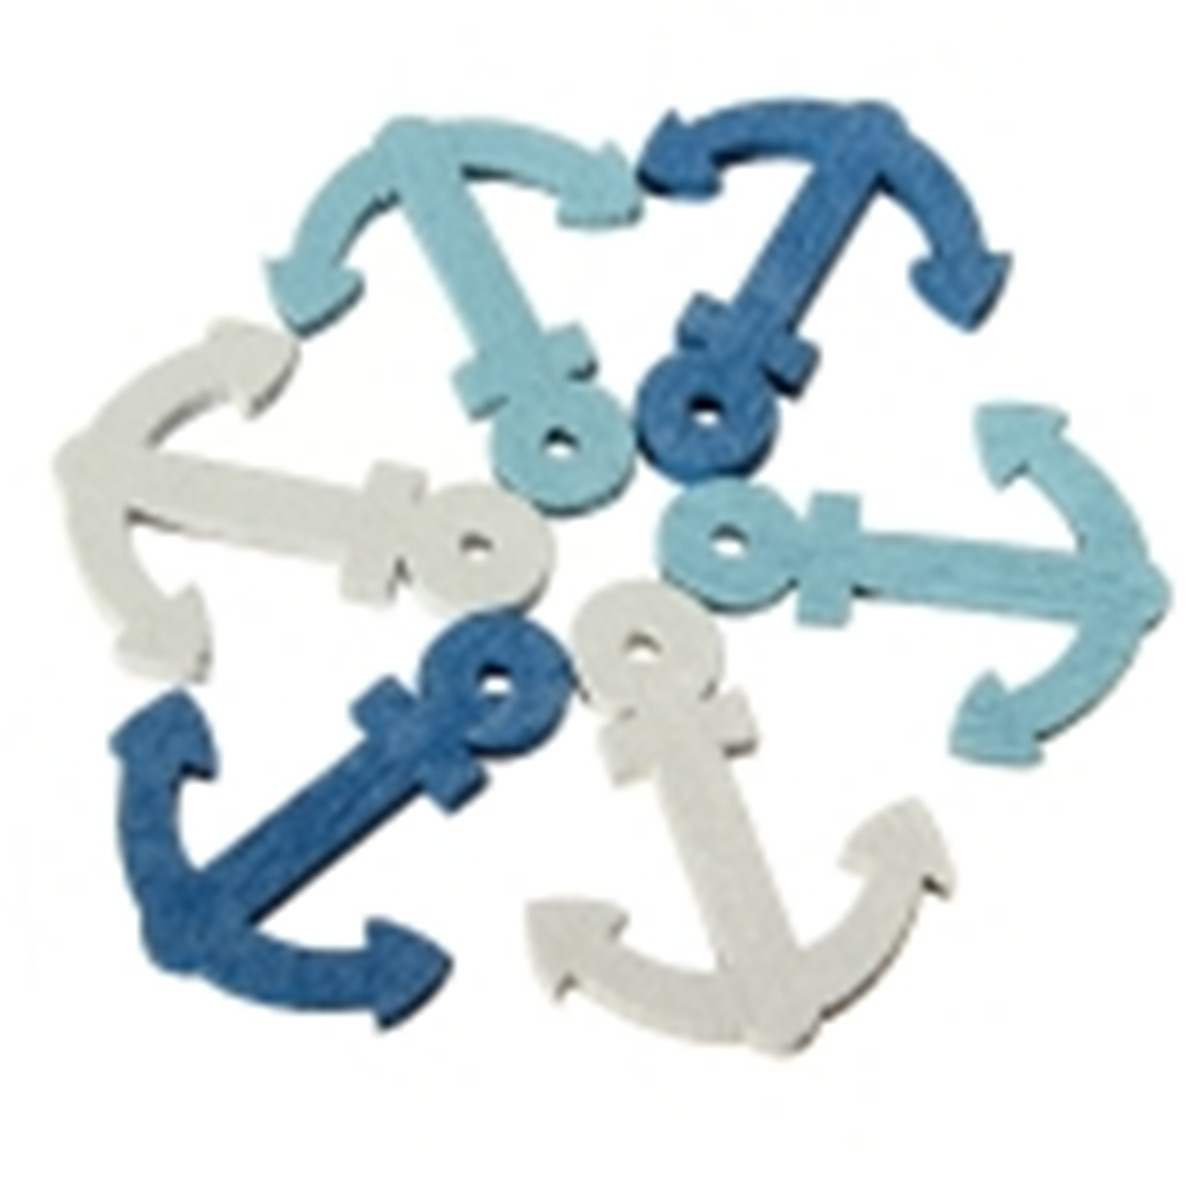 New 50Pcs Funny <font><b>Nautical</b></font> Mini Wooden Anchor Crafts DIY Wood Hanging Gift <font><b>Home</b></font> <font><b>Decoration</b></font> Ornament Embellishment